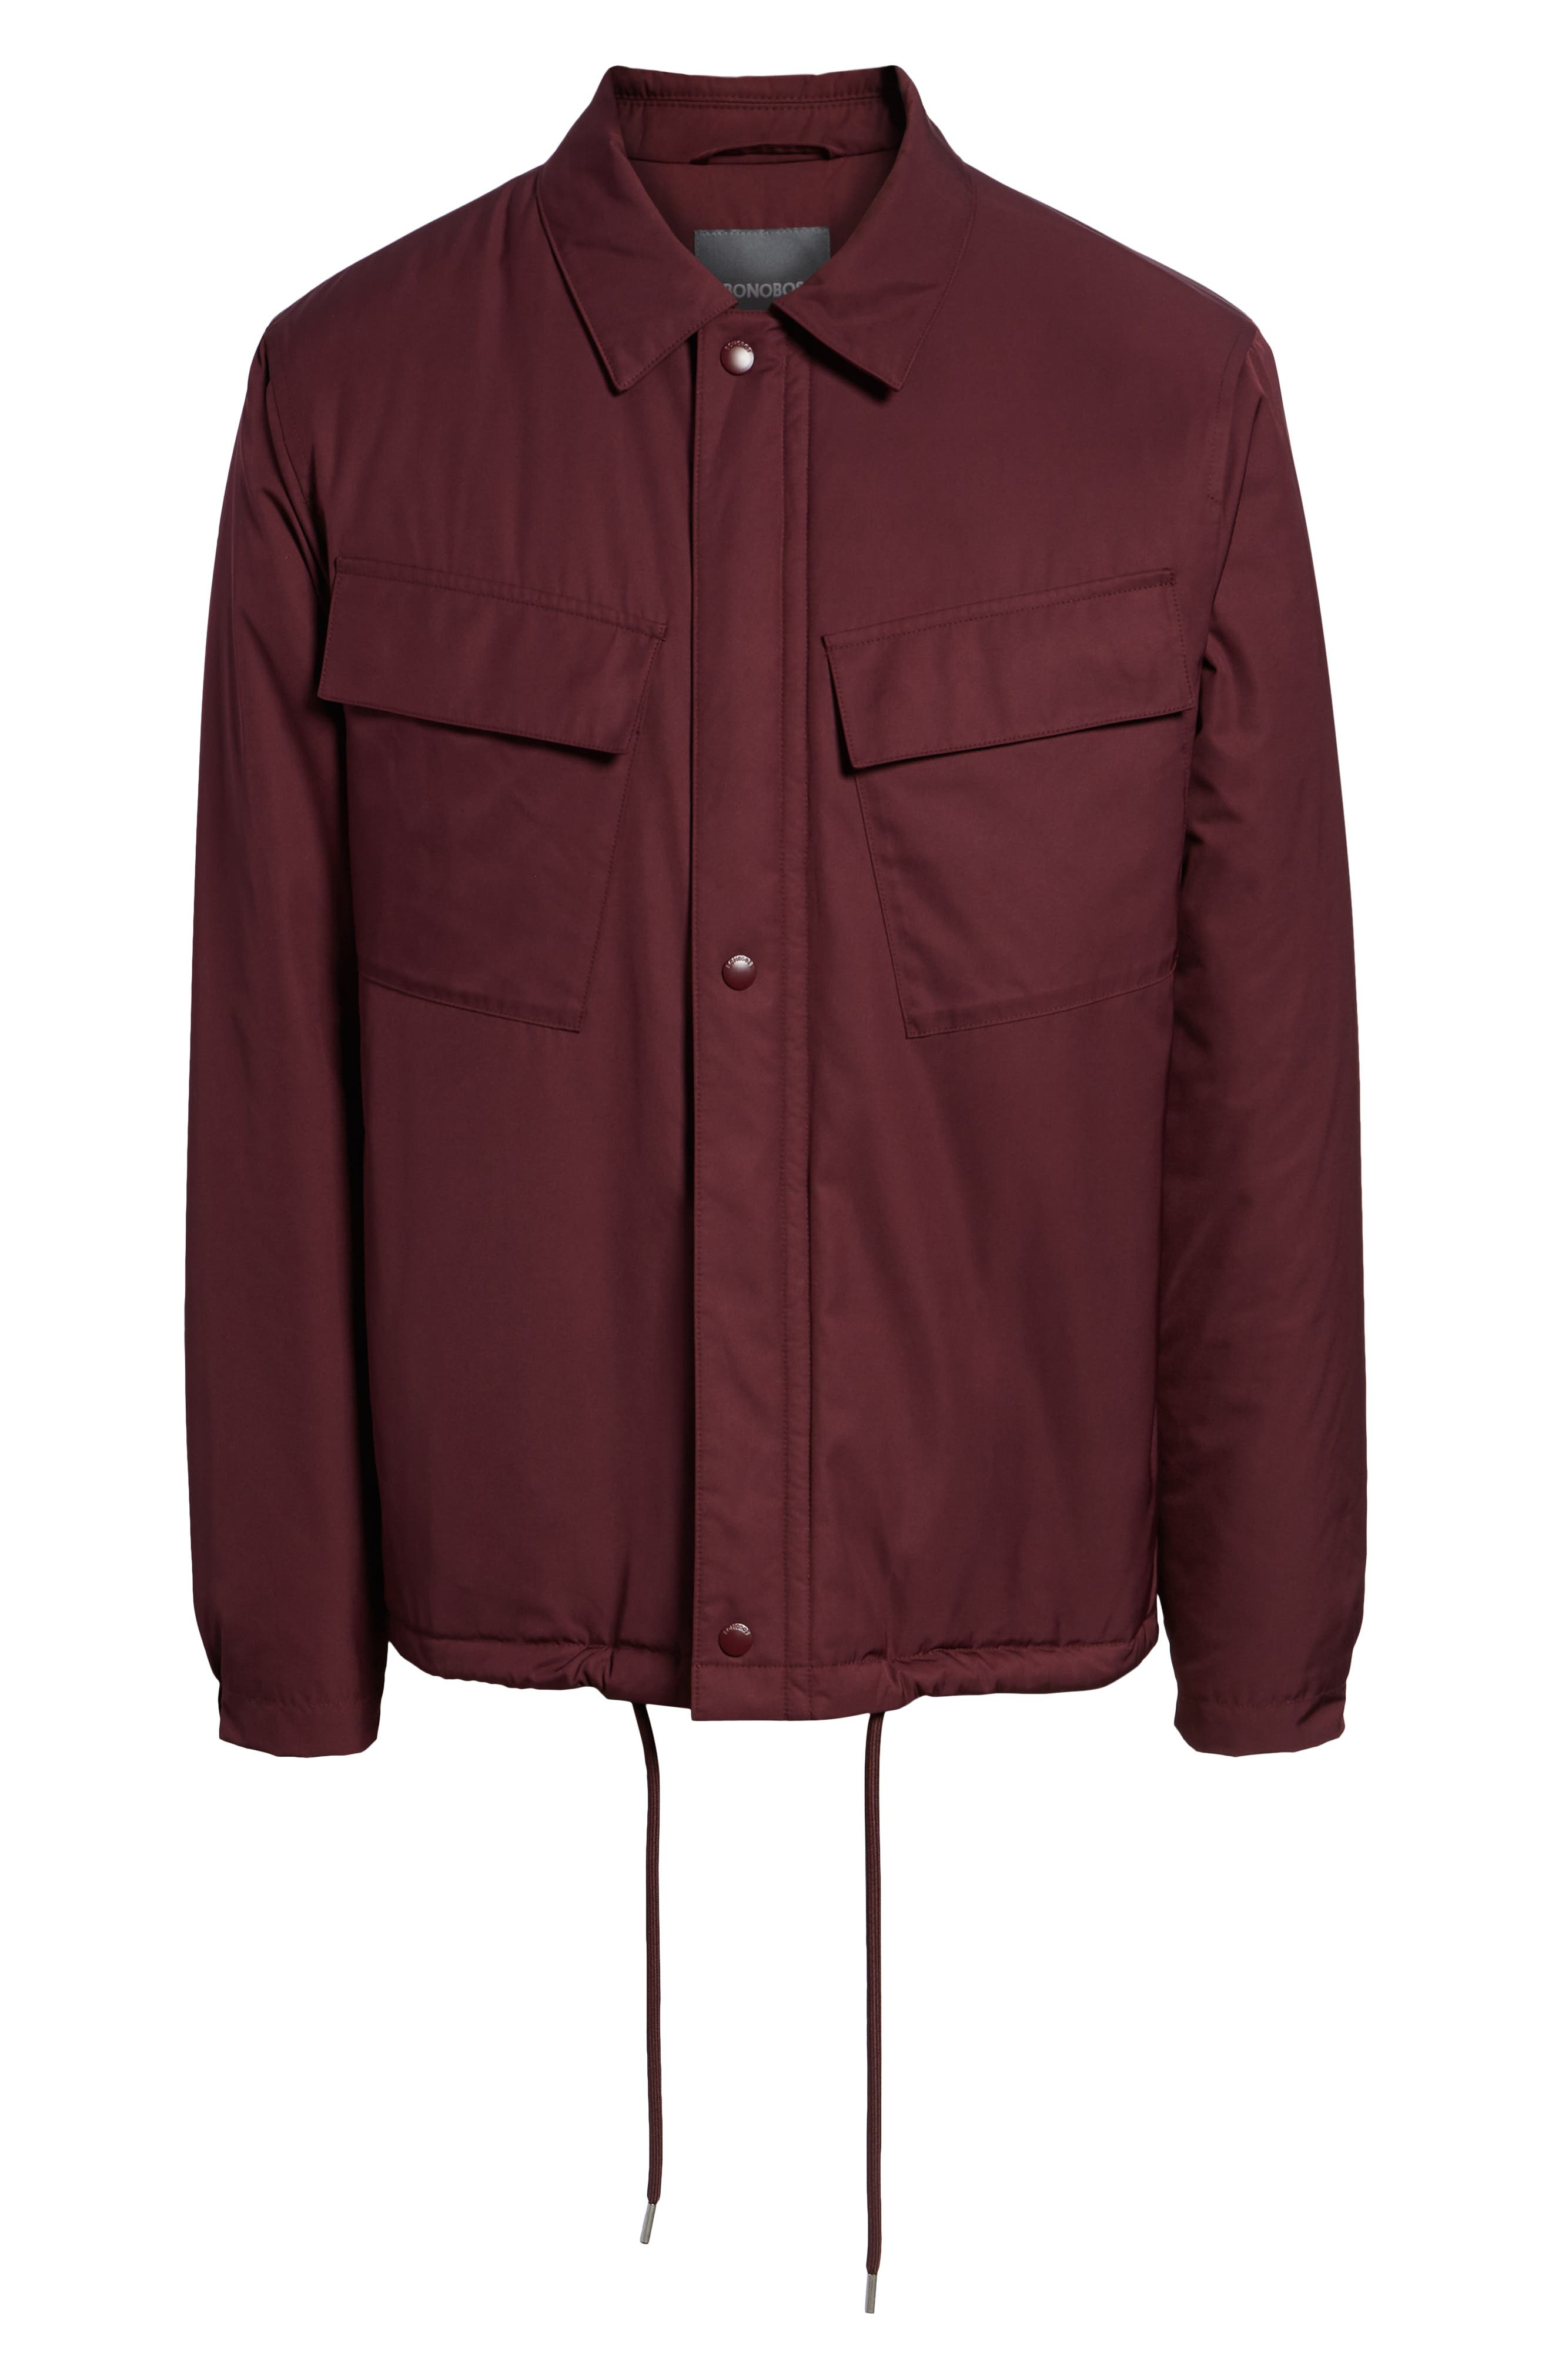 Coaches Jacket,                             Alternate thumbnail 6, color,                             BURGUNDY